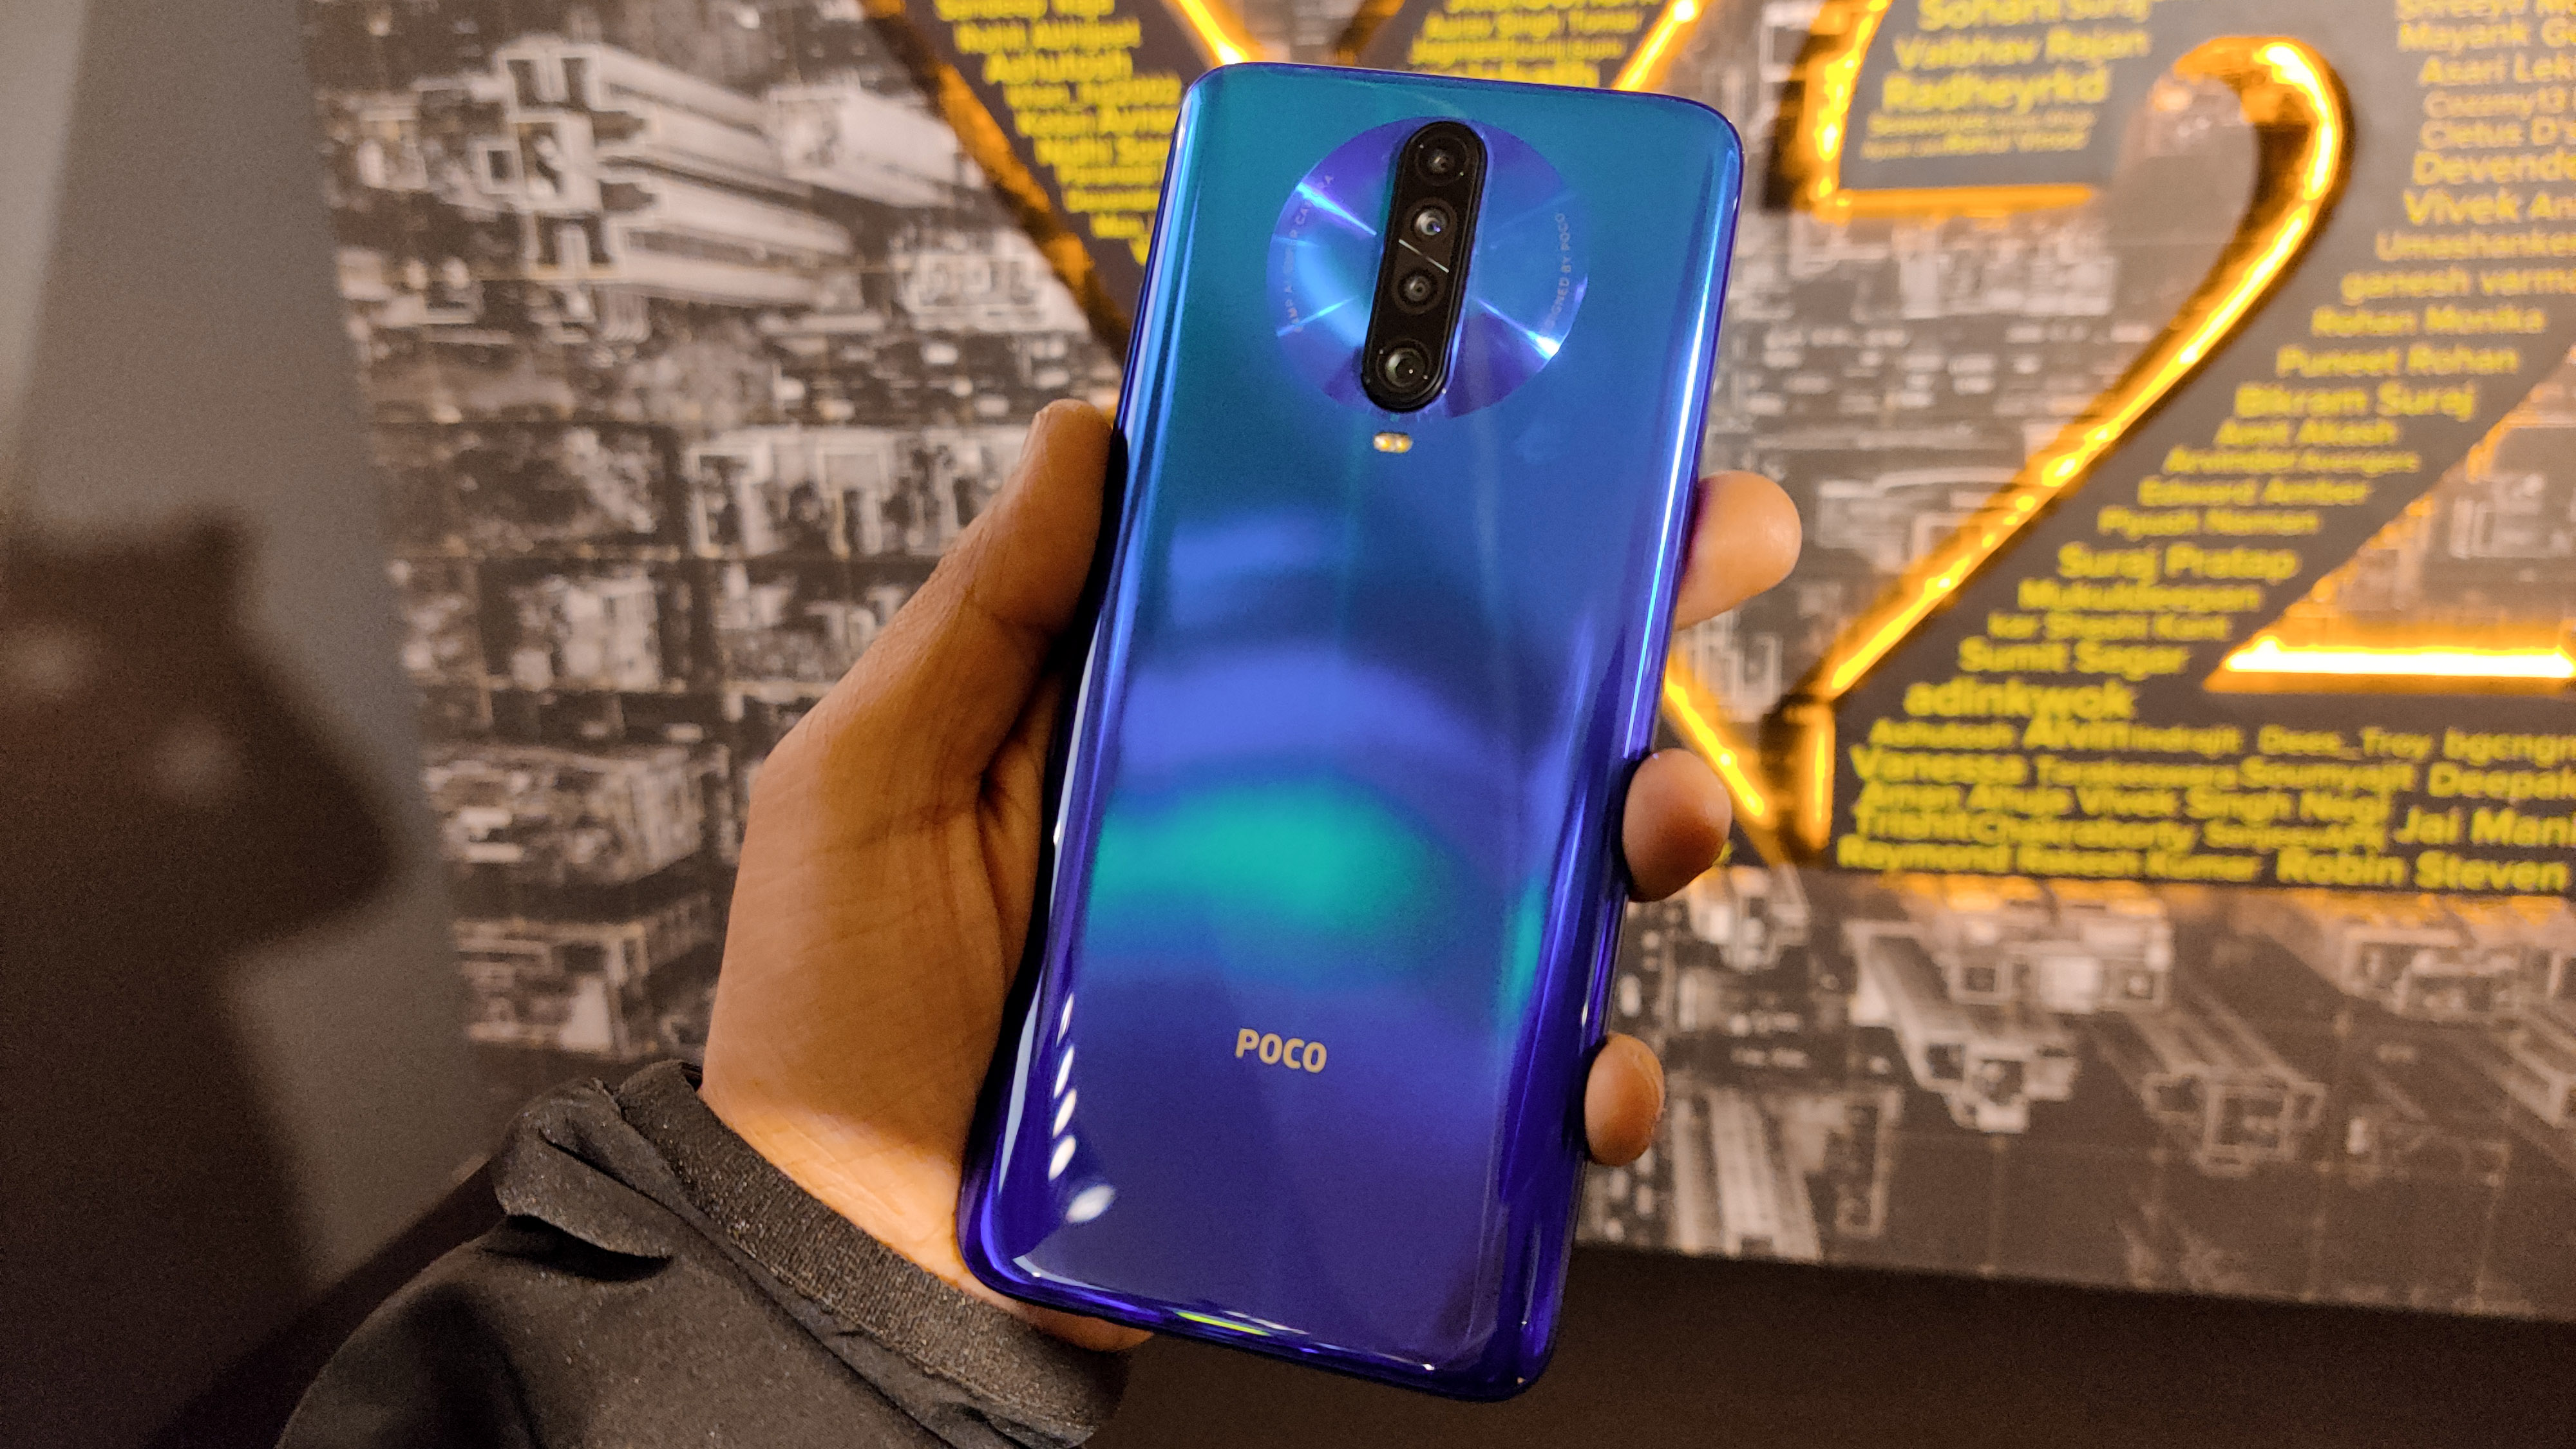 The Poco F2 will not be a rebranded Redmi K30 Pro in India